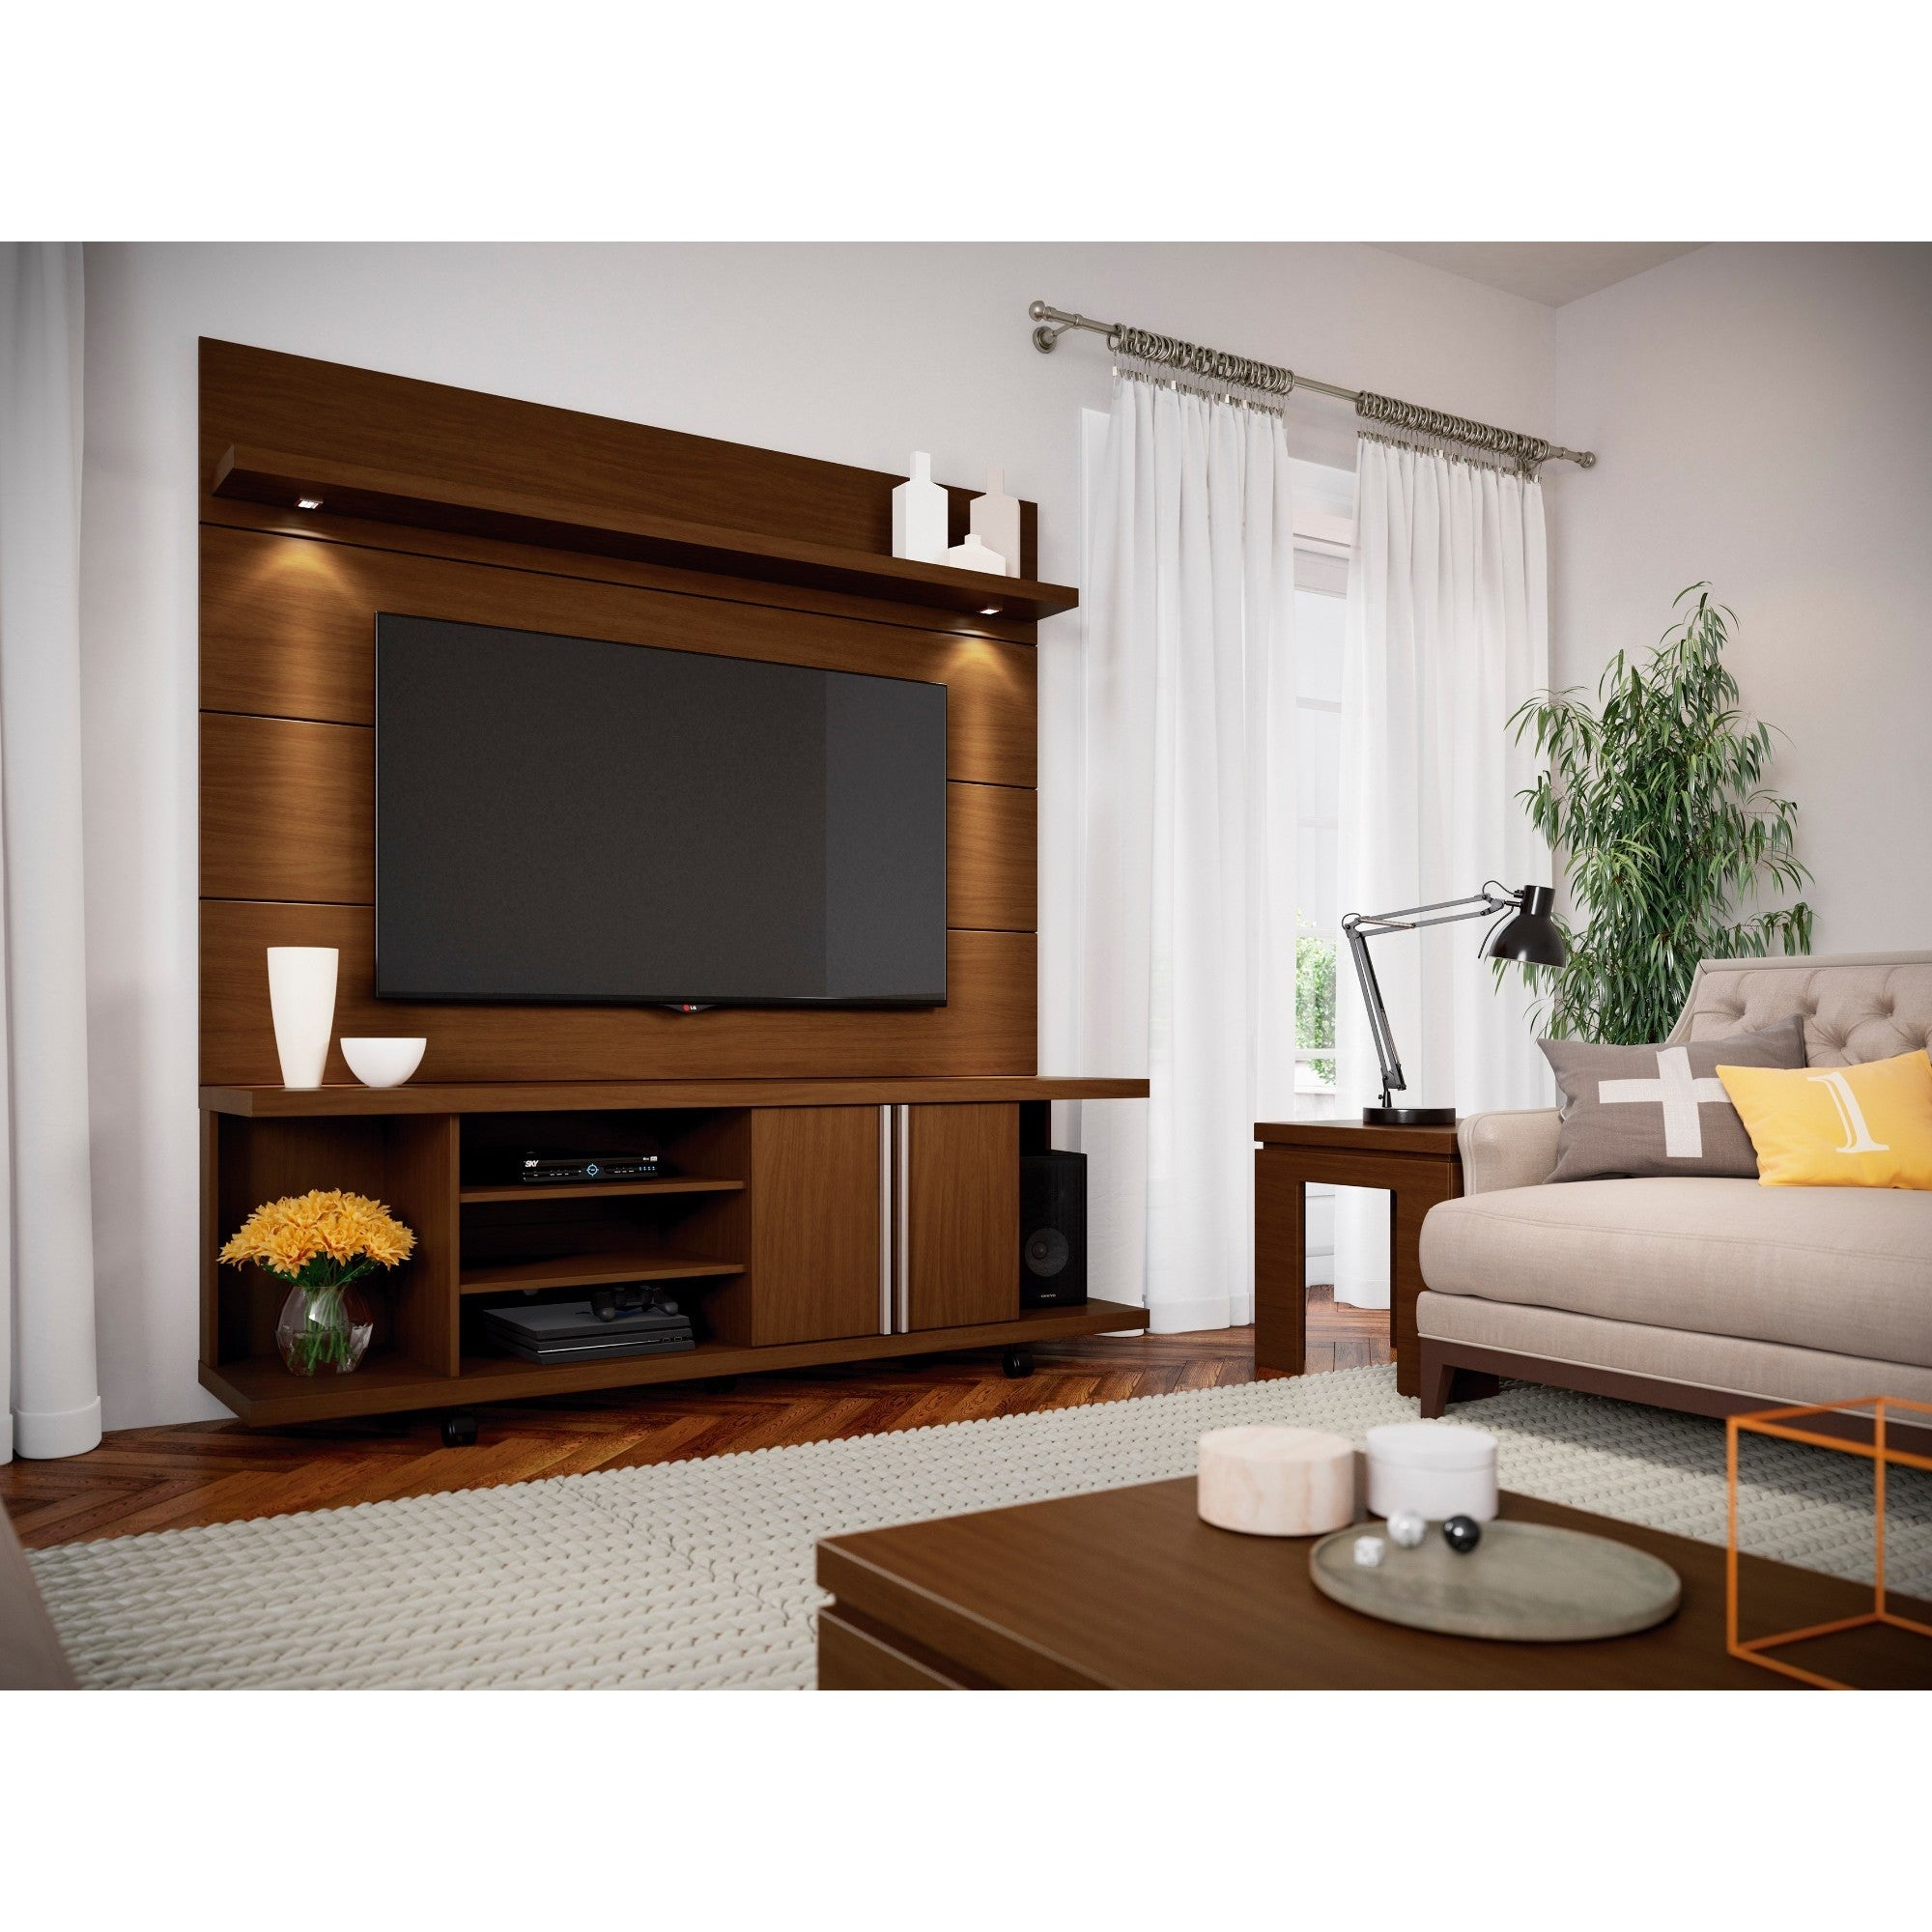 Manhattan Comfort Carnegie Tv Stand And Cabrini 1 8 Floating Wall Tv Panel With Led Lights Overstock 17439792